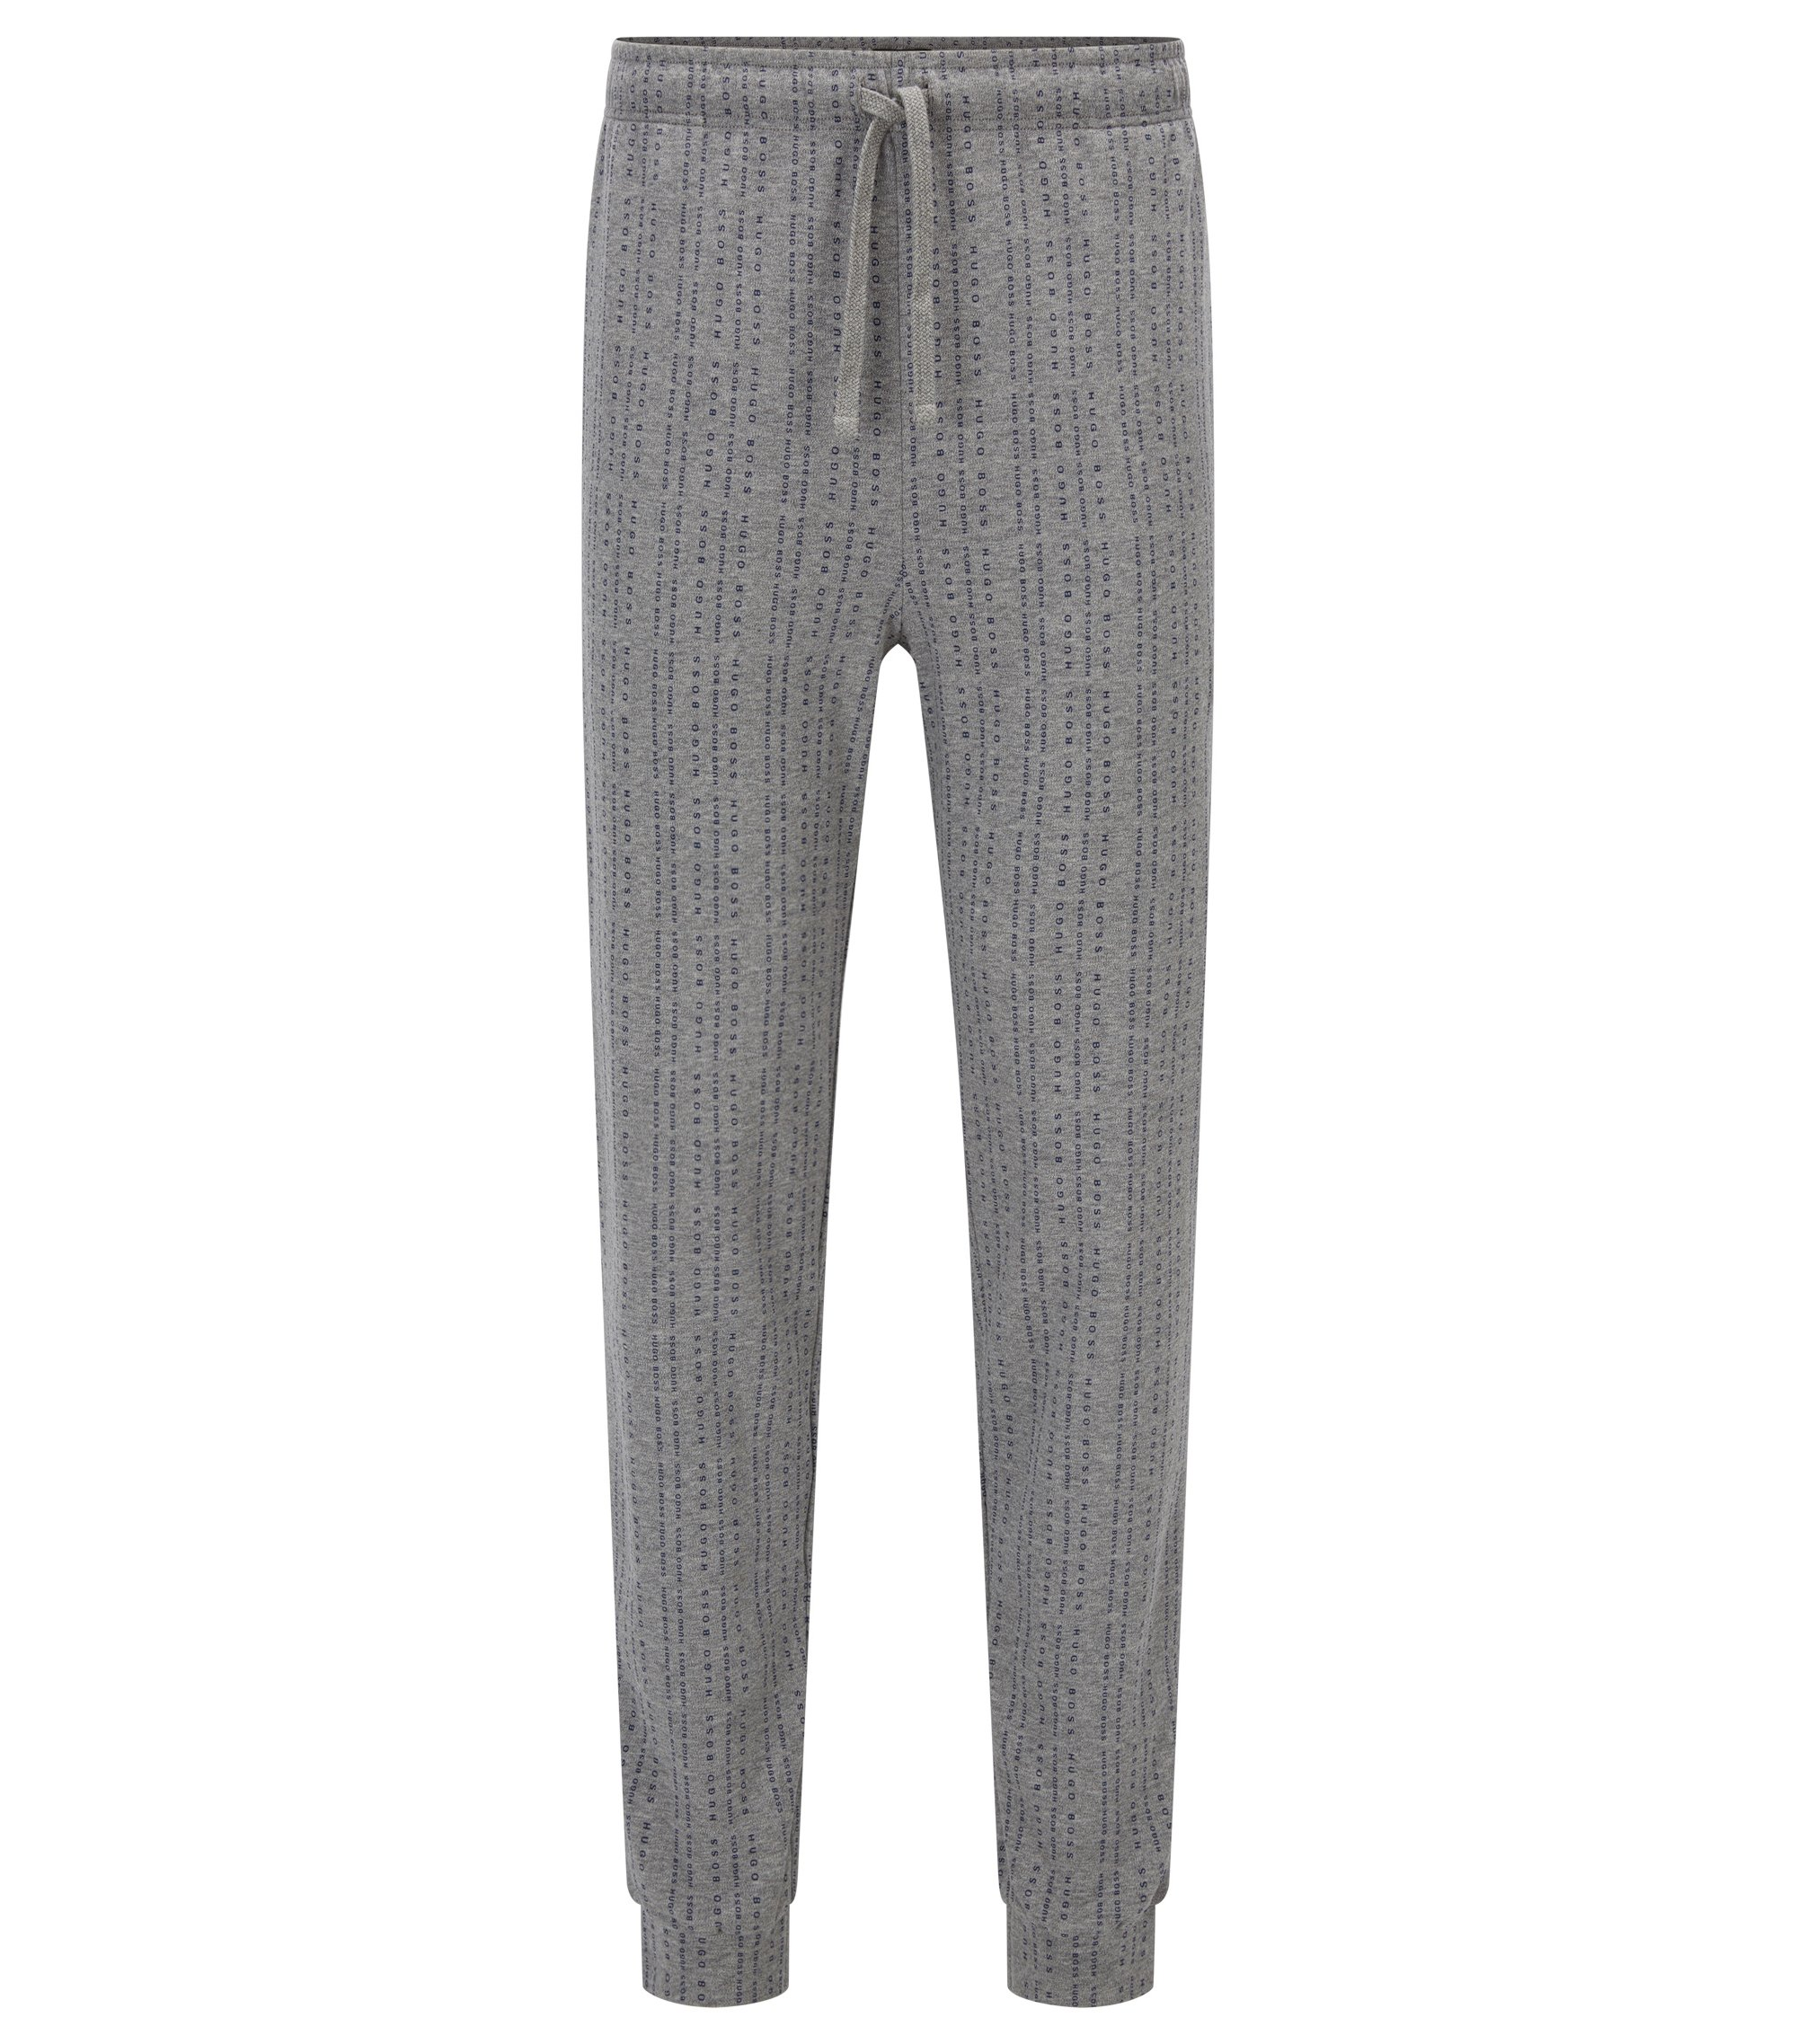 Pyjama bottoms in logo-printed cotton, Grey